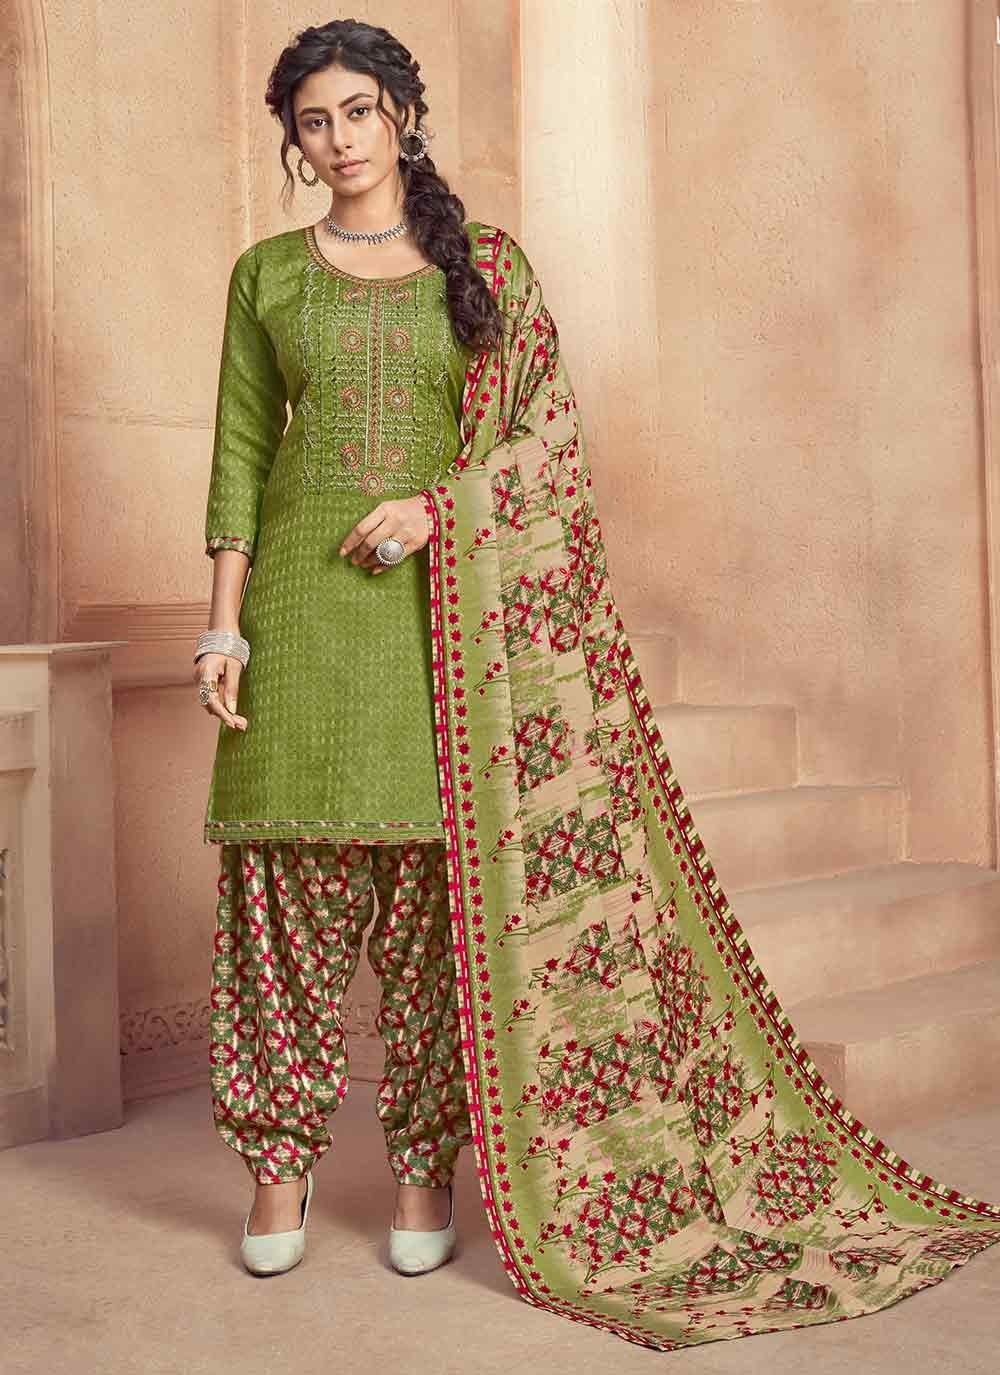 Patiala Salwar Kameez Embroidered Pashmina in Green